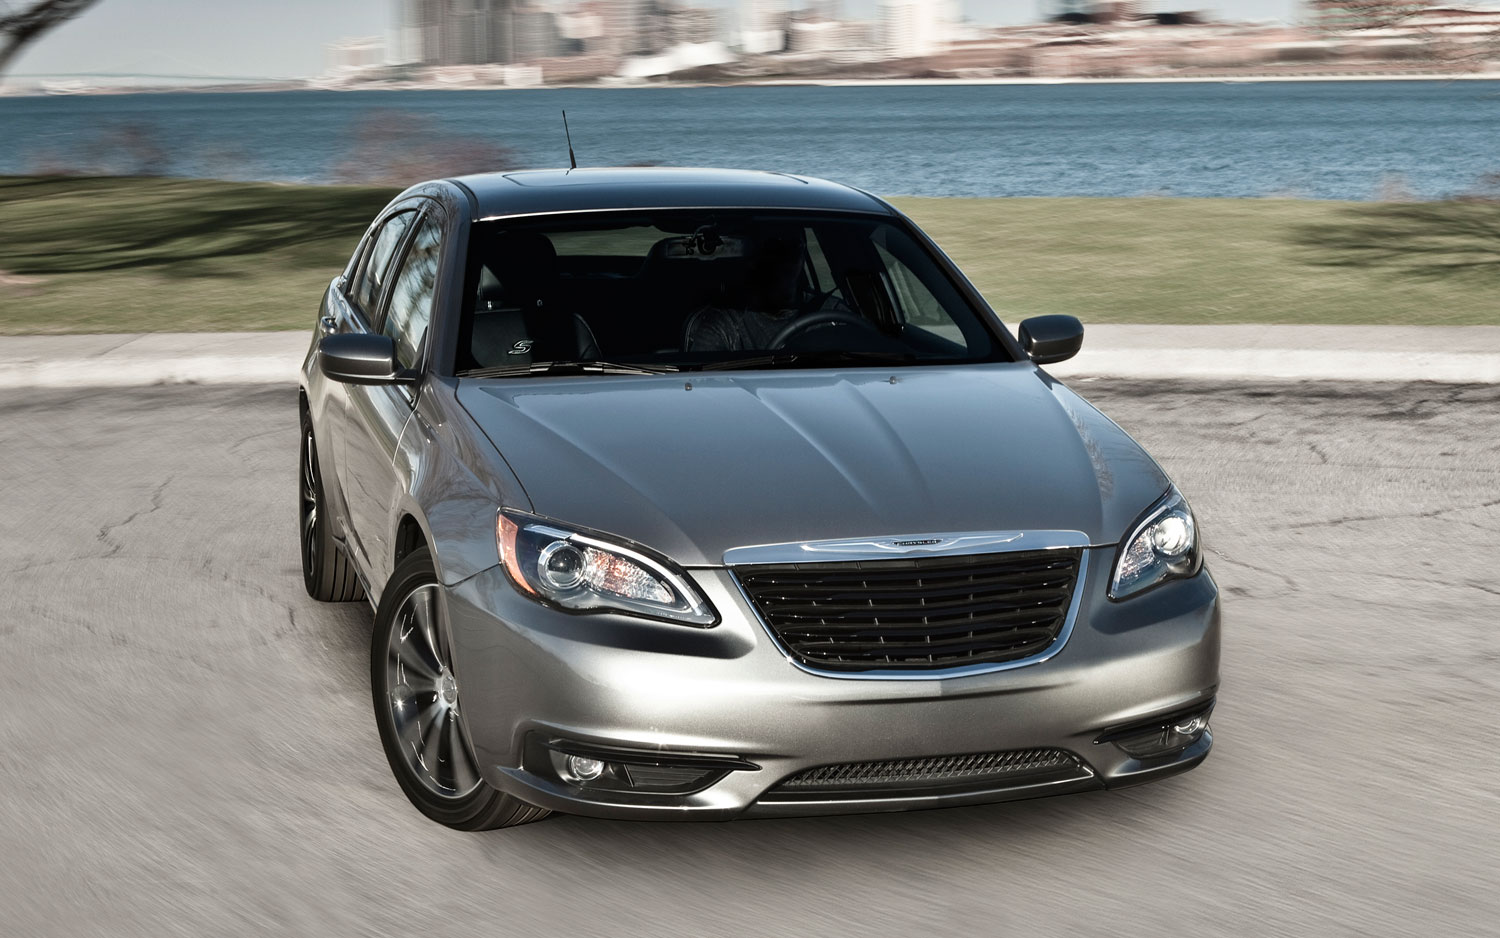 2012 Chrysler 200S Front View1